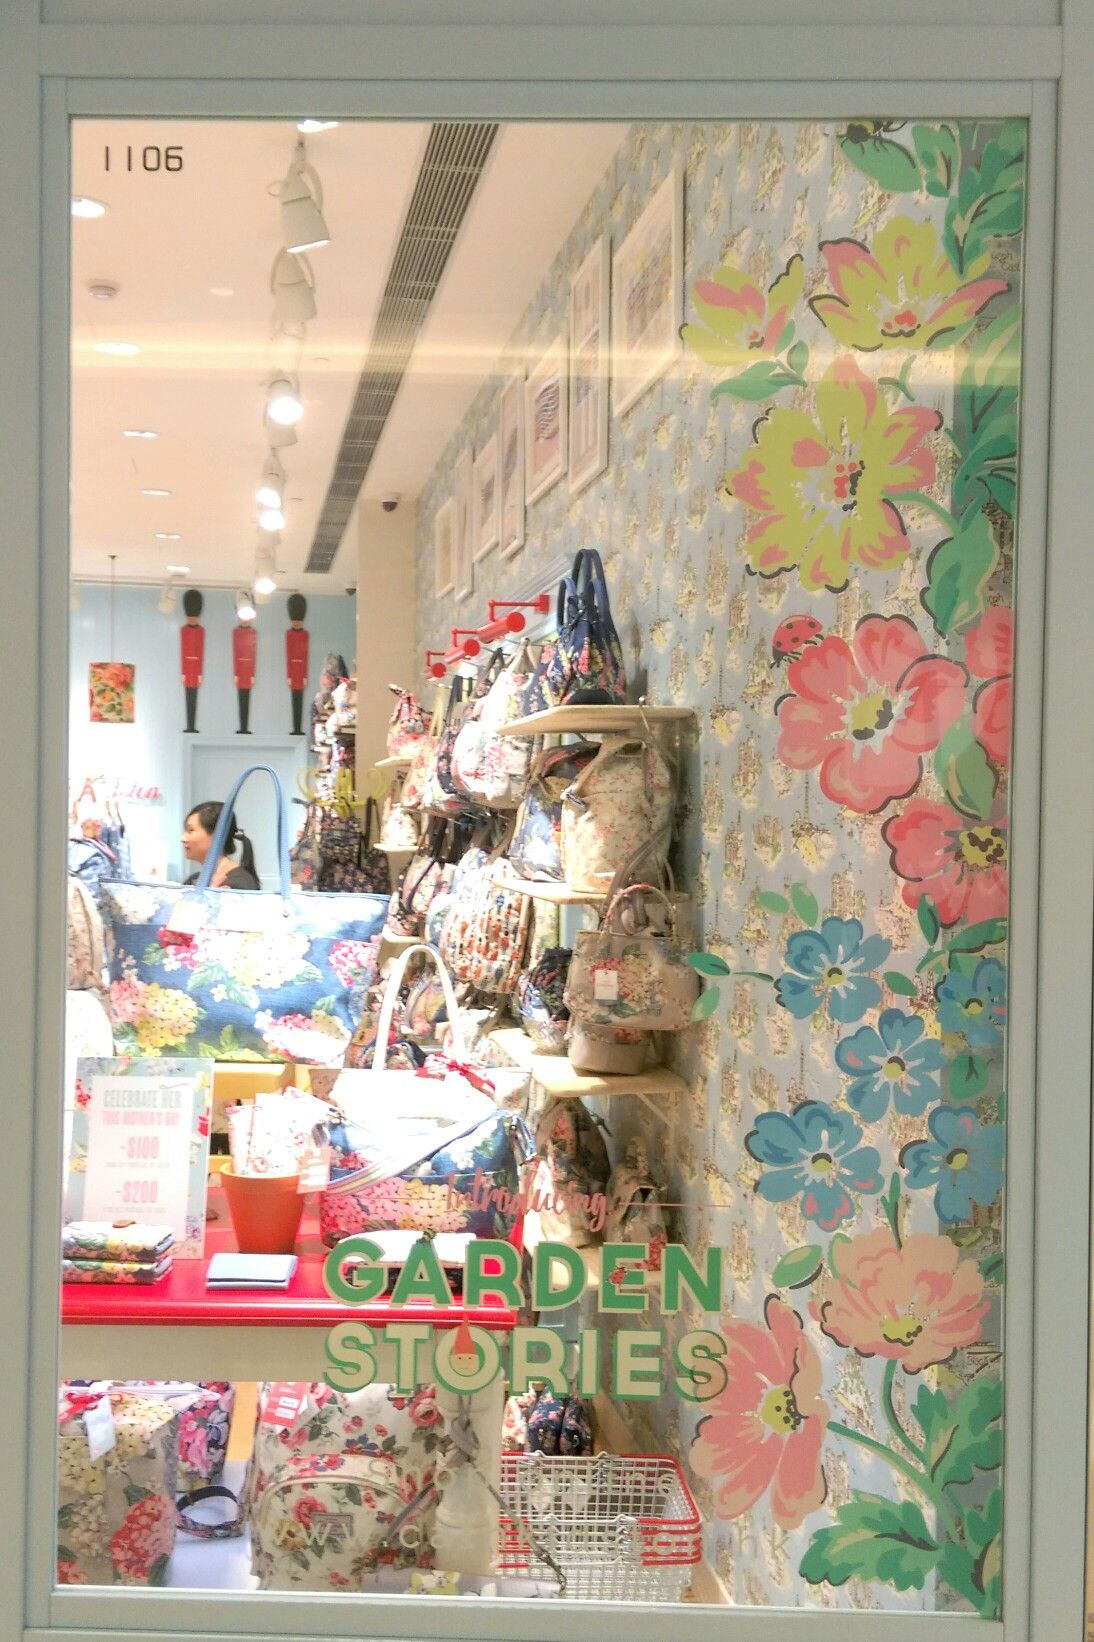 Window display ideas  pin by lau manchi on window display ideas  pinterest  window displays